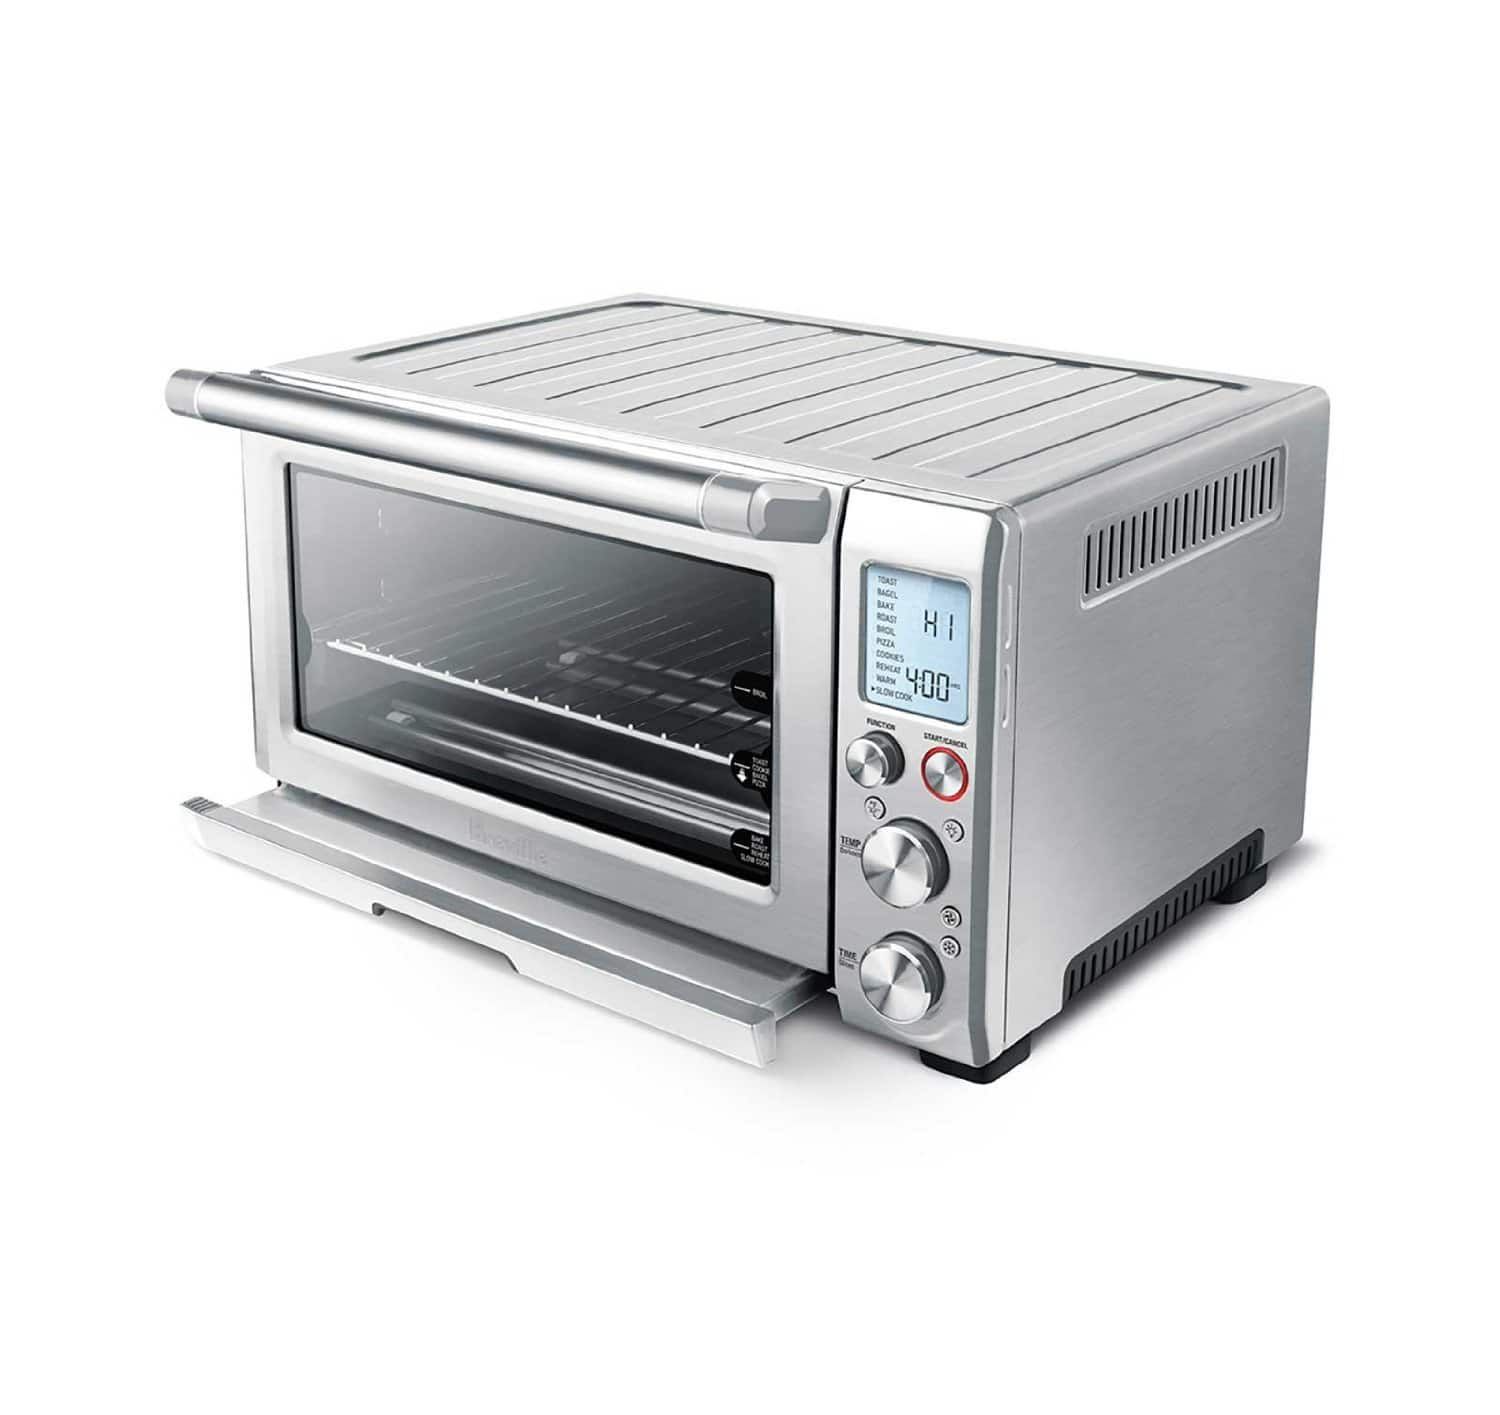 buy corvus india online at amazon dp for white sale toaster low oven otg in orbit prices